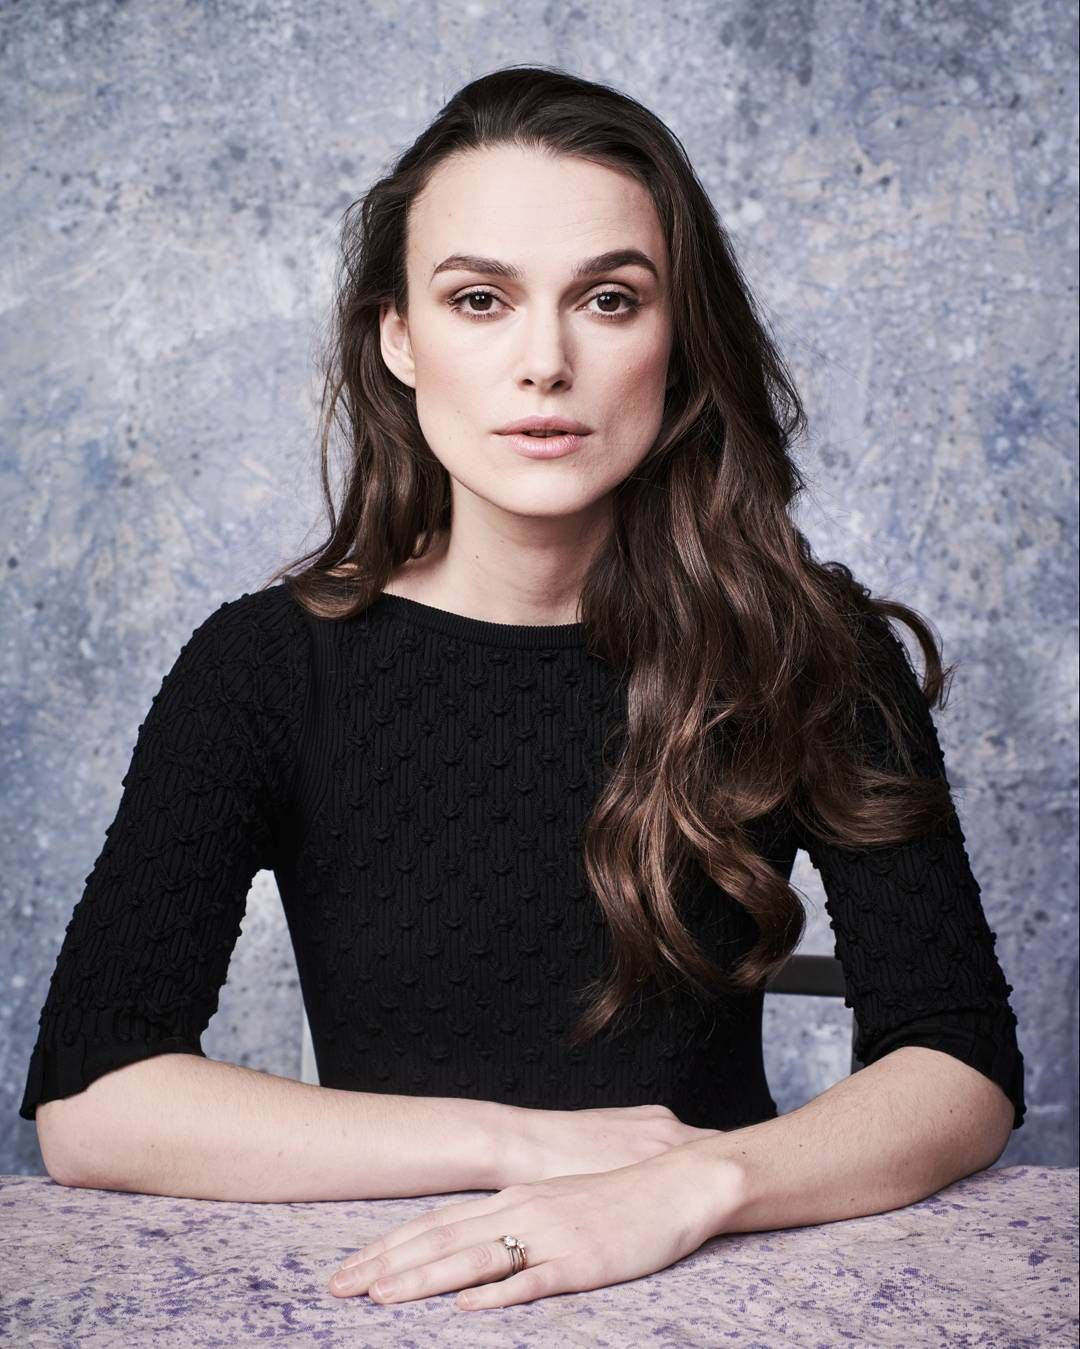 Keira Knightley, Reese Witherspoon, More Shine at the 2015 BAFTAs images